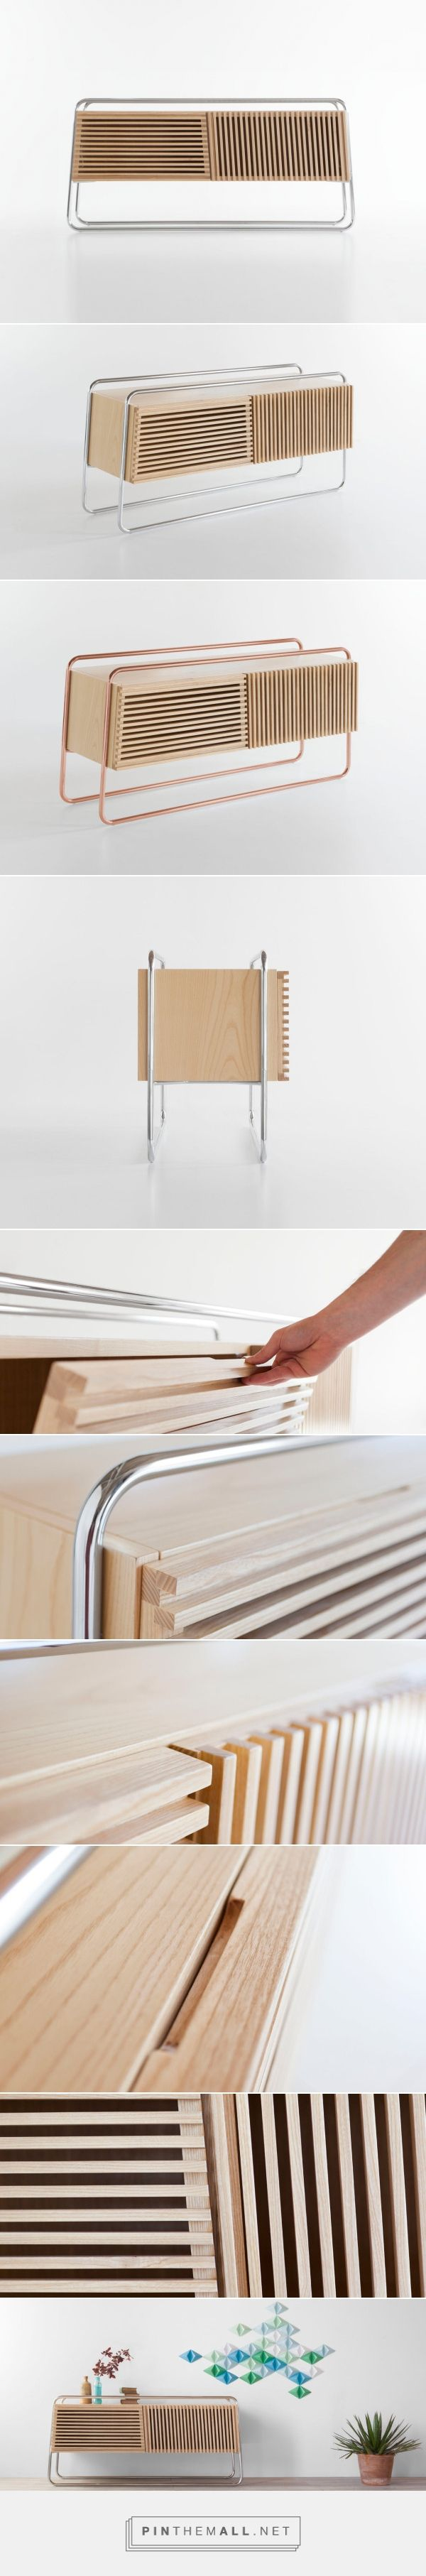 A Sideboard Inspired by the Modernist Movement - Design Milk... - a grouped images picture - Pin Them All